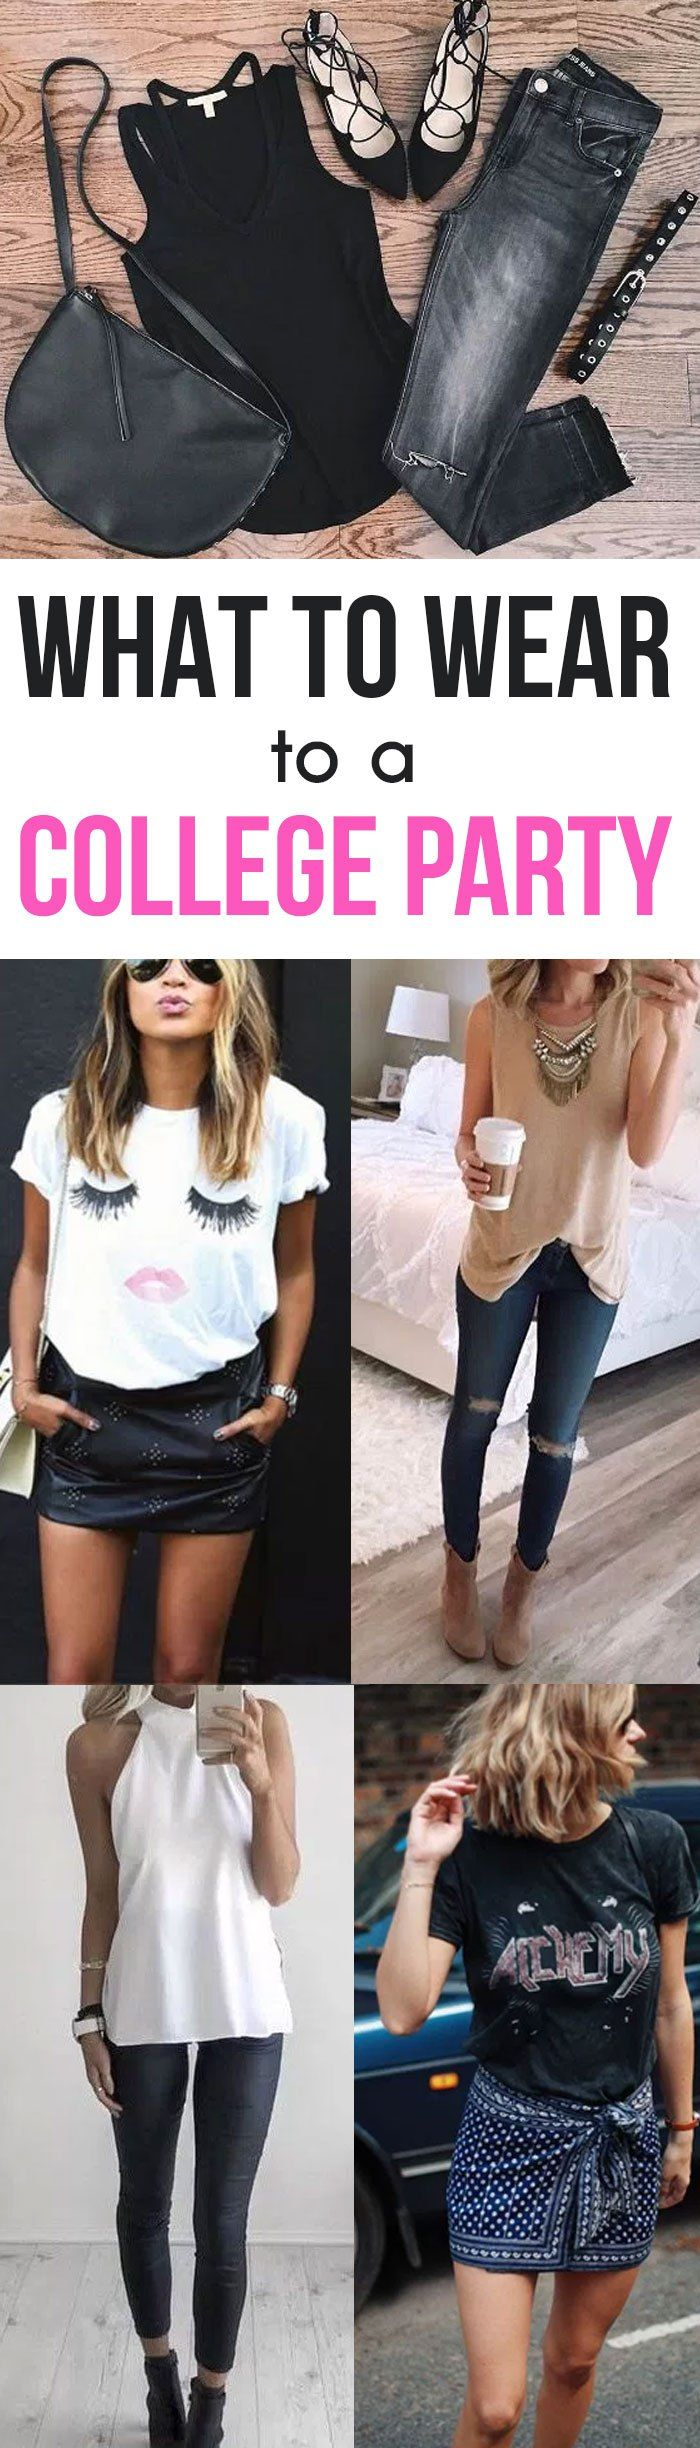 Buy Lifecollege College fashion summer bucket list pictures trends